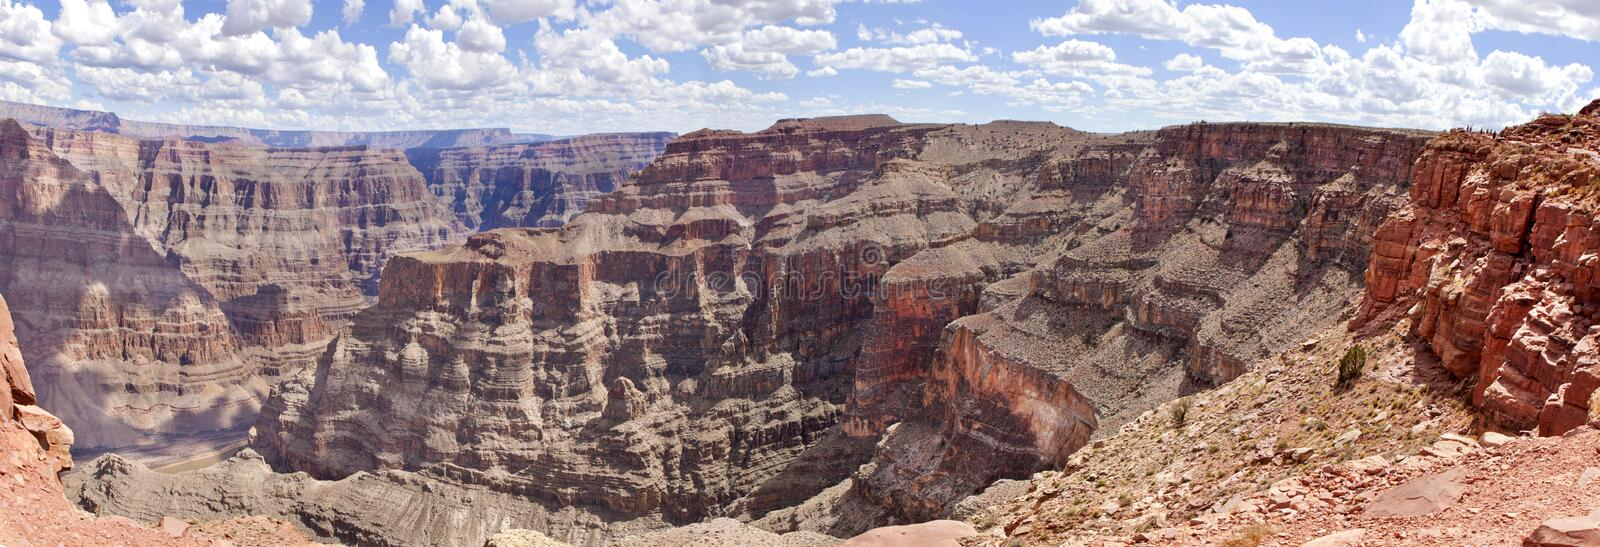 Grand Canyon (west rim) stock images